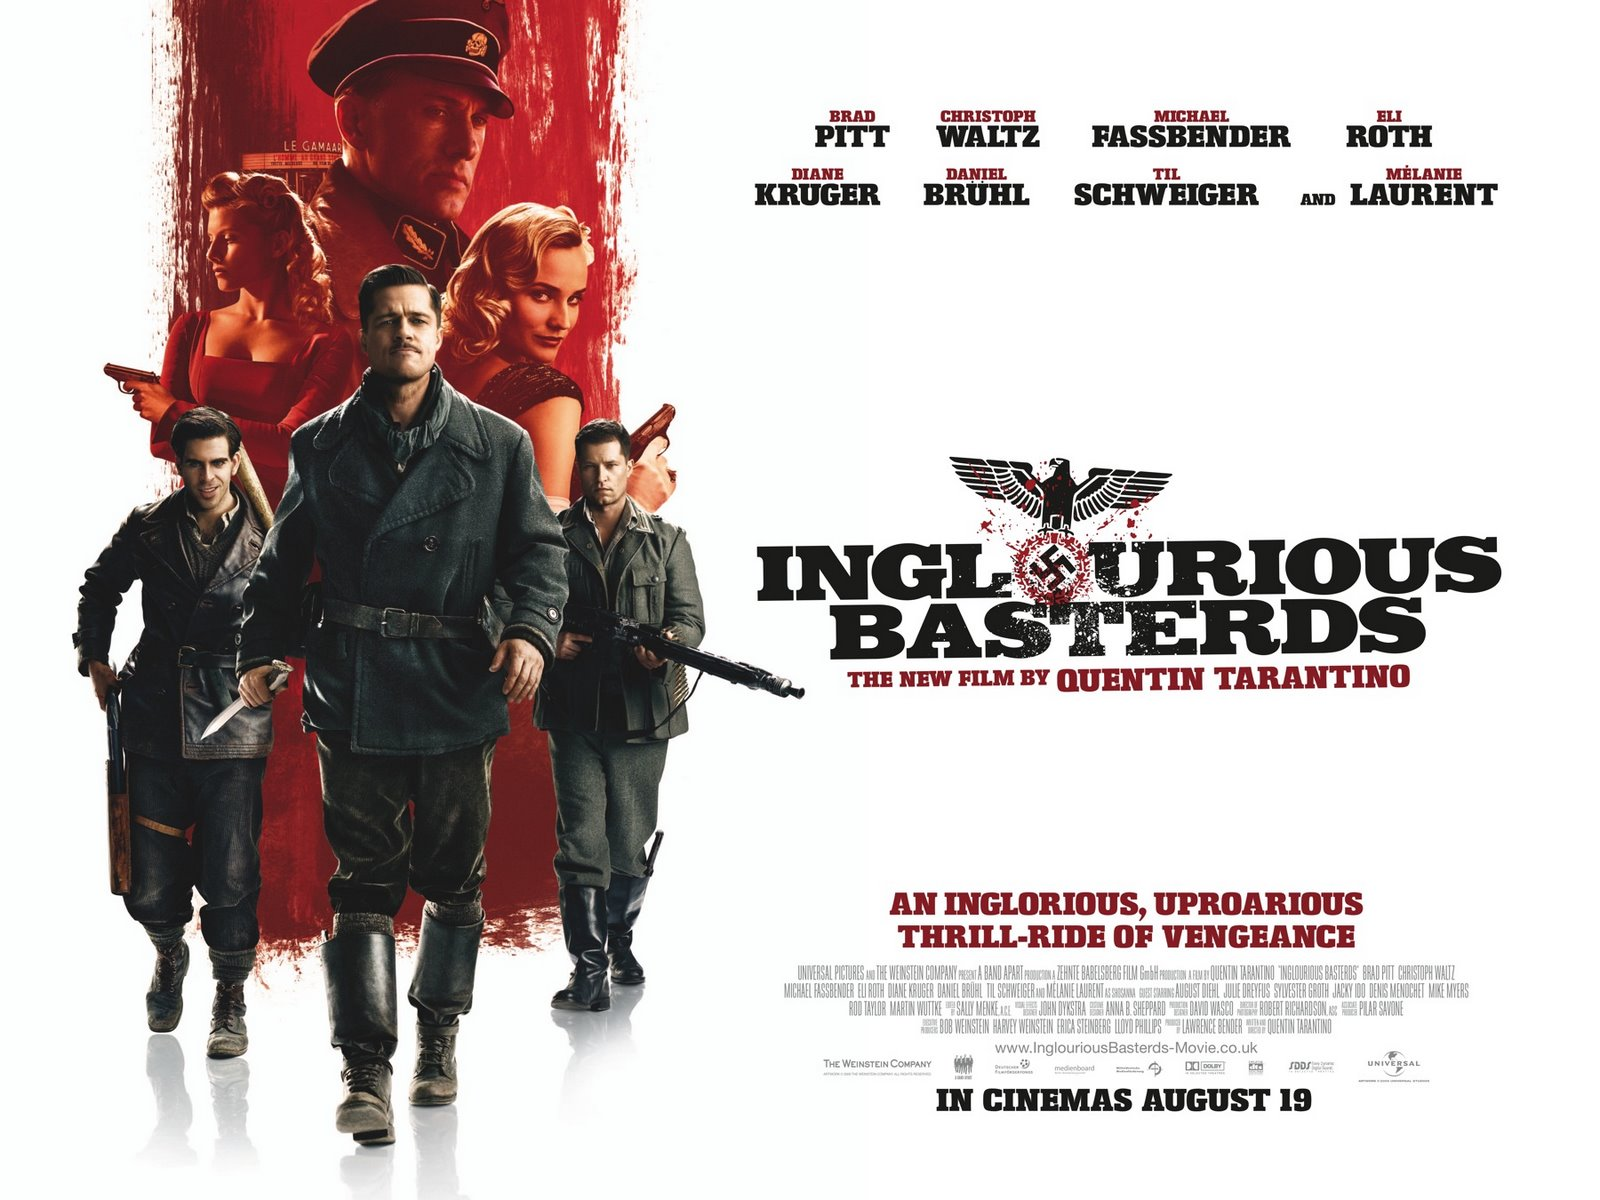 inglourious basterds 2009 europe bluray 720p inglourious basterds 2009 europe bluray 720p ganool 1000mb top imdb 096 google drive